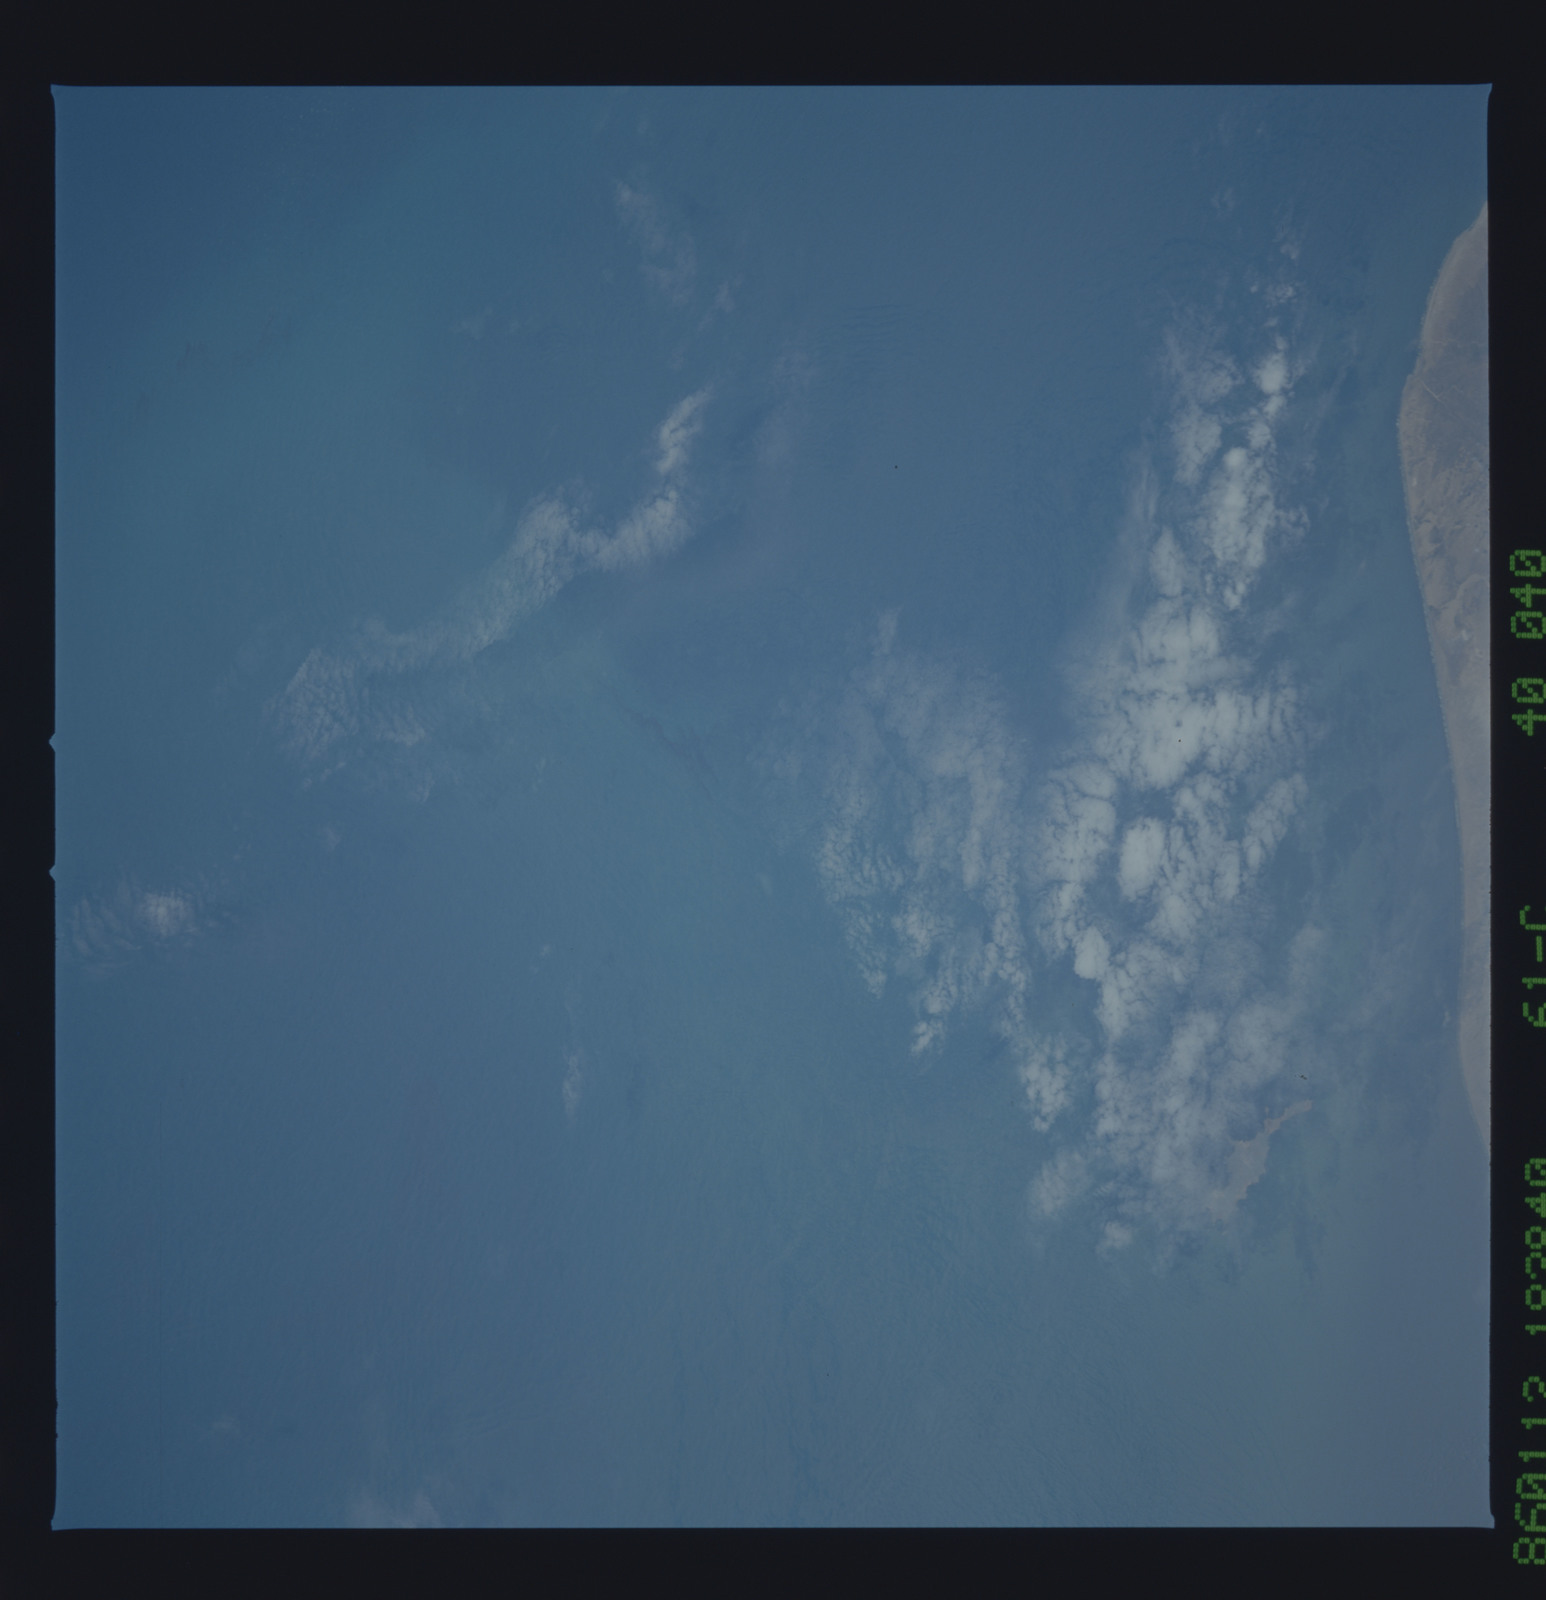 61C-40-040 - STS-61C - STS-61C earth observations